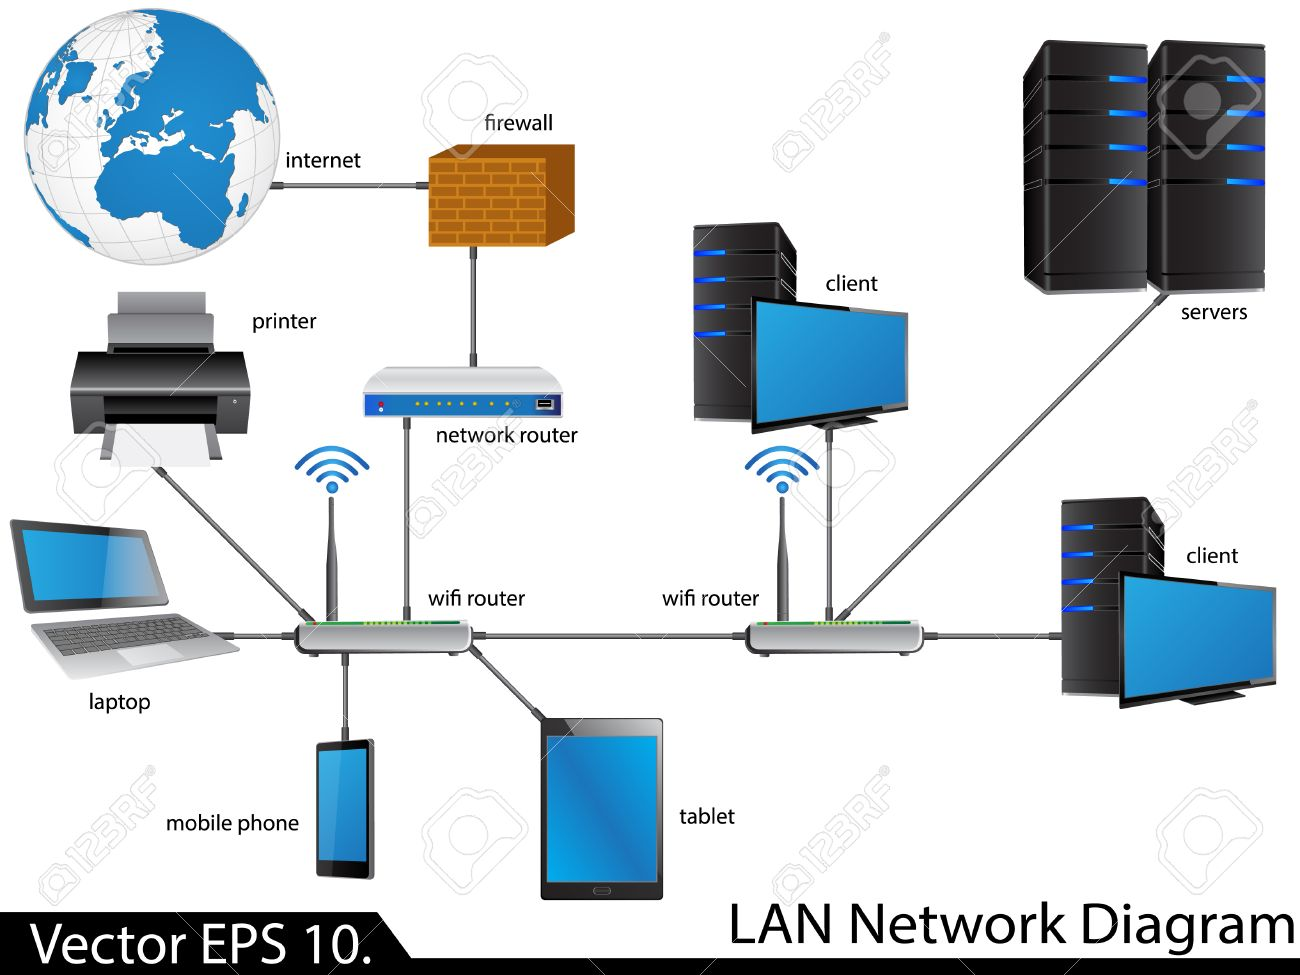 648 Lan Network Diagram Stock Vector Illustration And Royalty Free